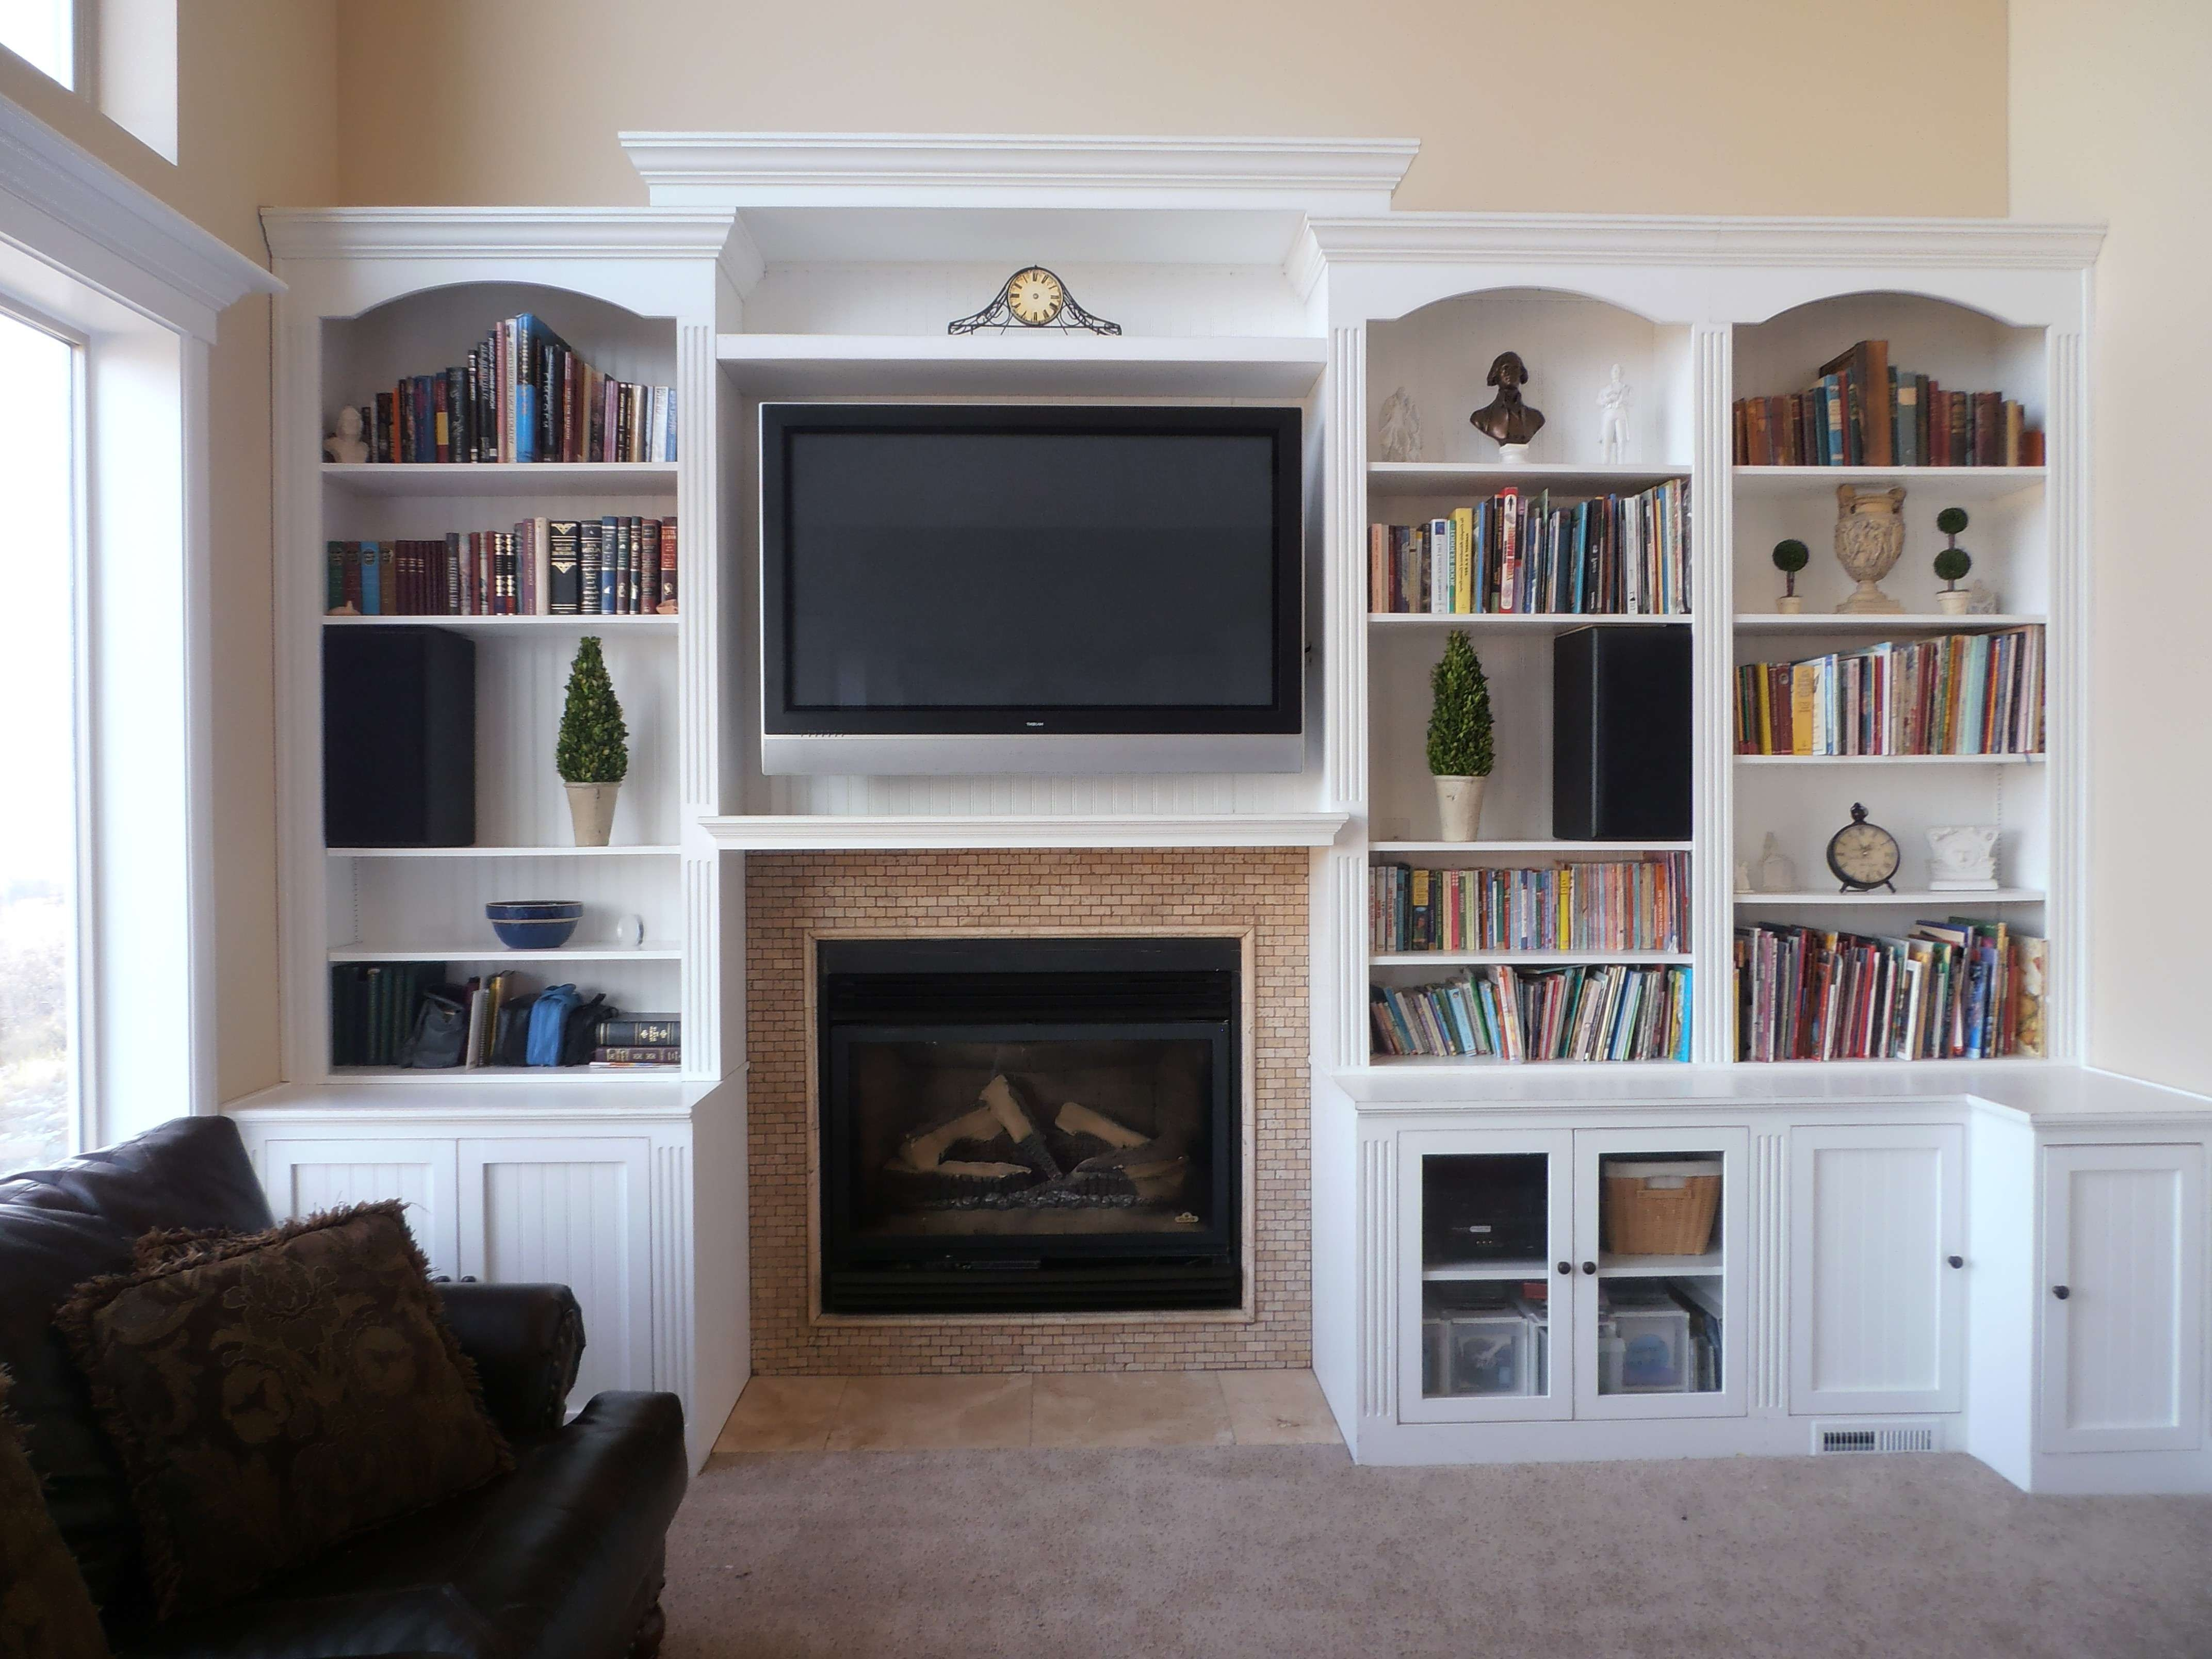 Furniture Terrific Wooden Painted White Tv Stand With Storage With Regard To Tv Stands With Bookcases (View 3 of 15)